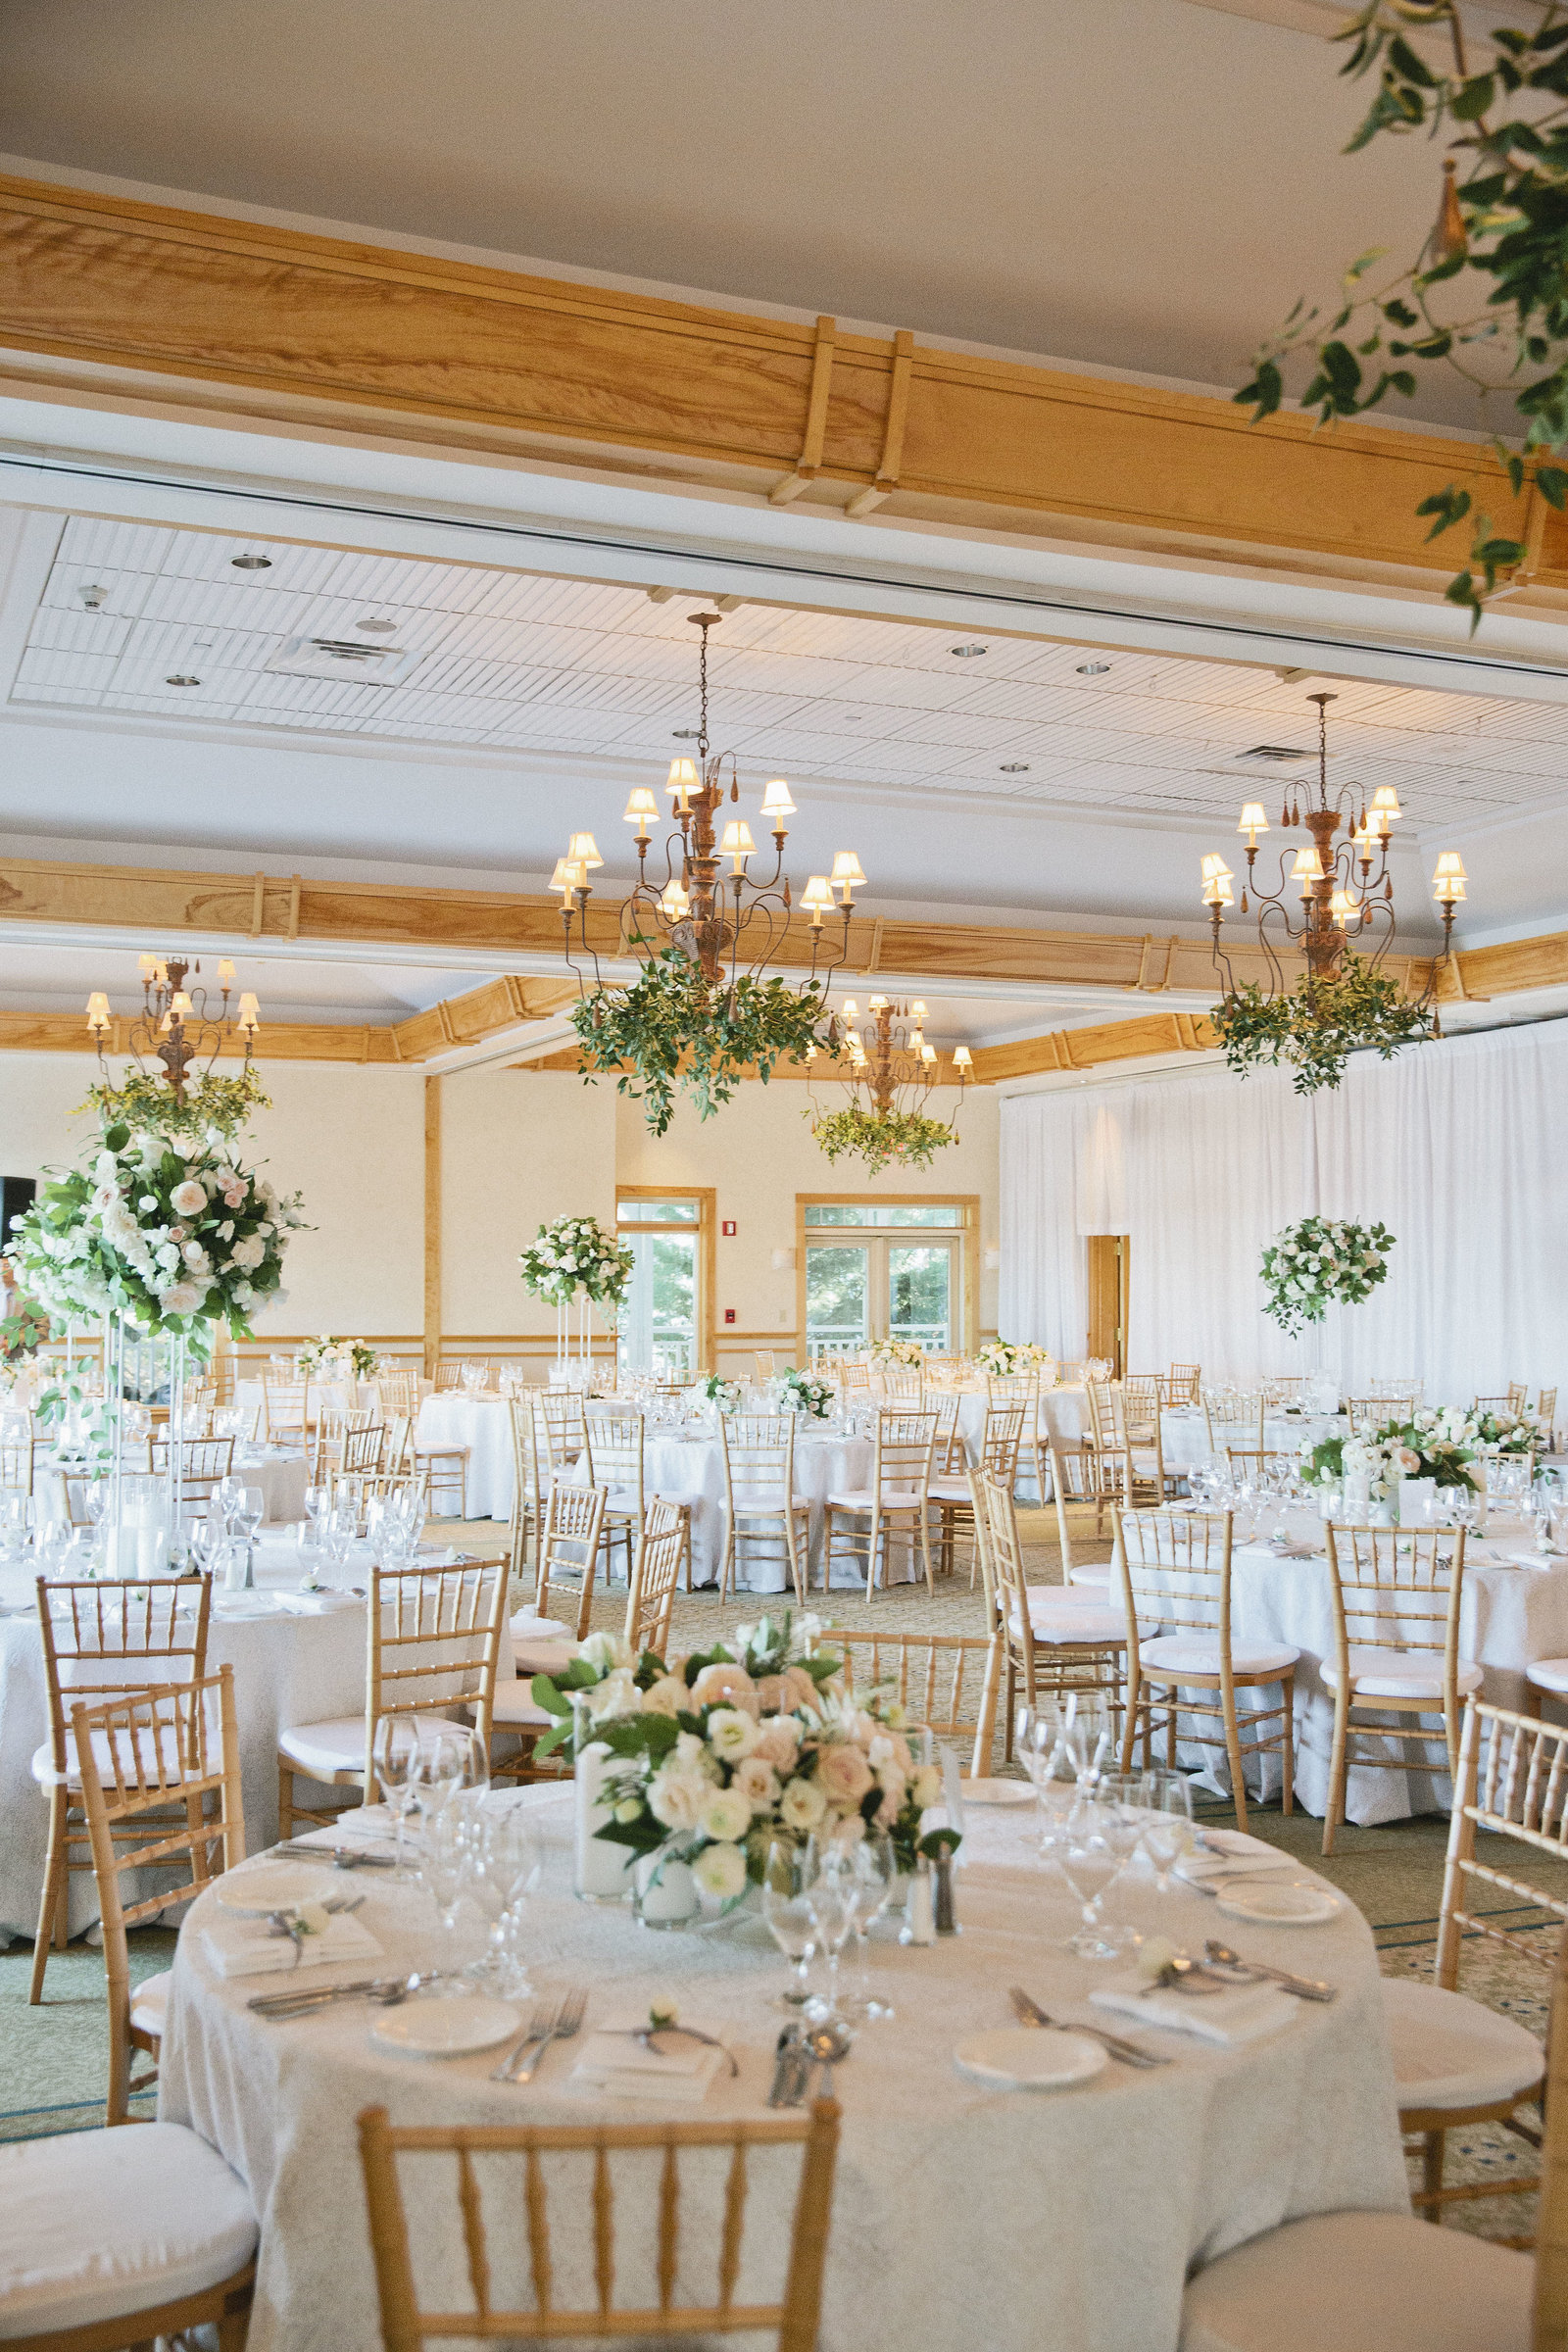 The Bachelor Whitney Bischoff's Wedding Reception by luxury event planner Always Yours Events at Wequassett Resort